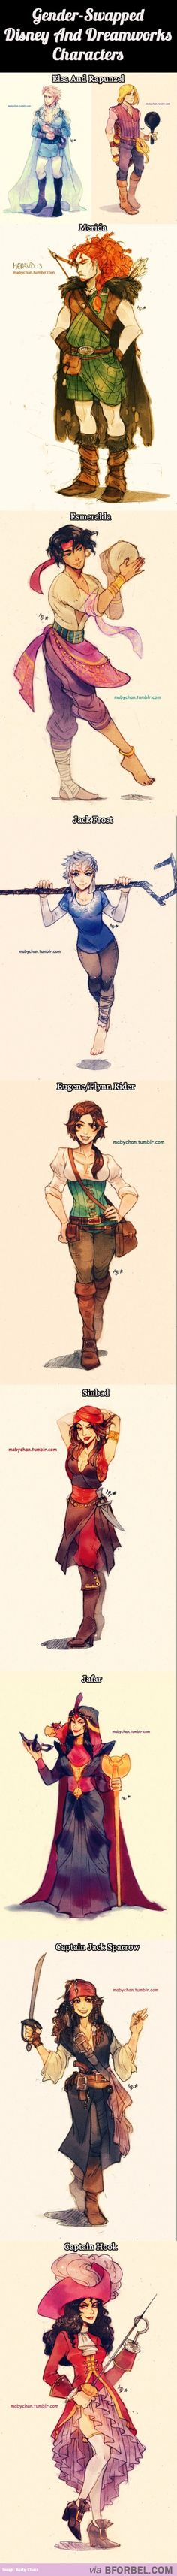 10 Gender-Swapped Disney And Dreamworks Characters…